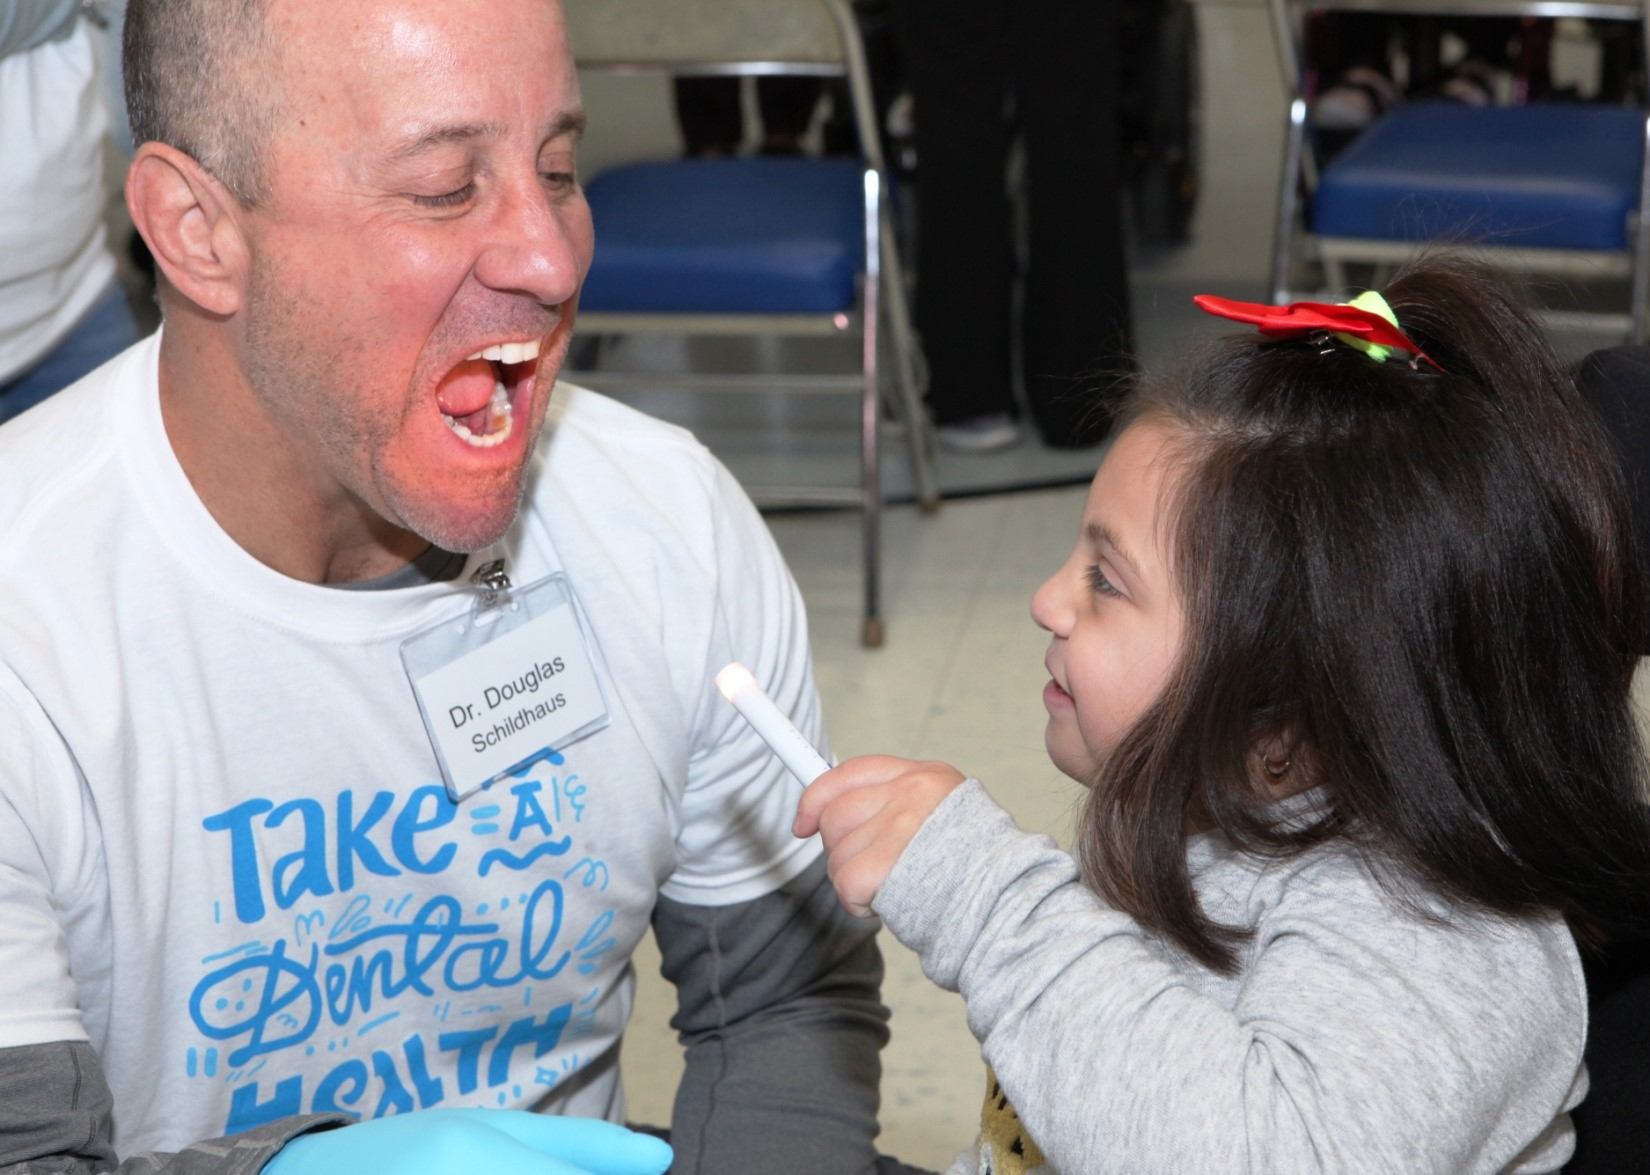 """Dr. Douglas Schildhaus undergoes a """"screening"""" from Henry Viscardi School student Victoria at Project Accessible Oral Health's """"Take a Dental Health Day: Screening and Education for the Disability Community"""" inaugural event, where more than 75 dentists, dental students, dental residents and volunteers were able to screen and educate more than 200 children, adolescents and adults with disabilities. The event took place on Friday, October 26 at The Viscardi Center's Albertson, New York campus."""